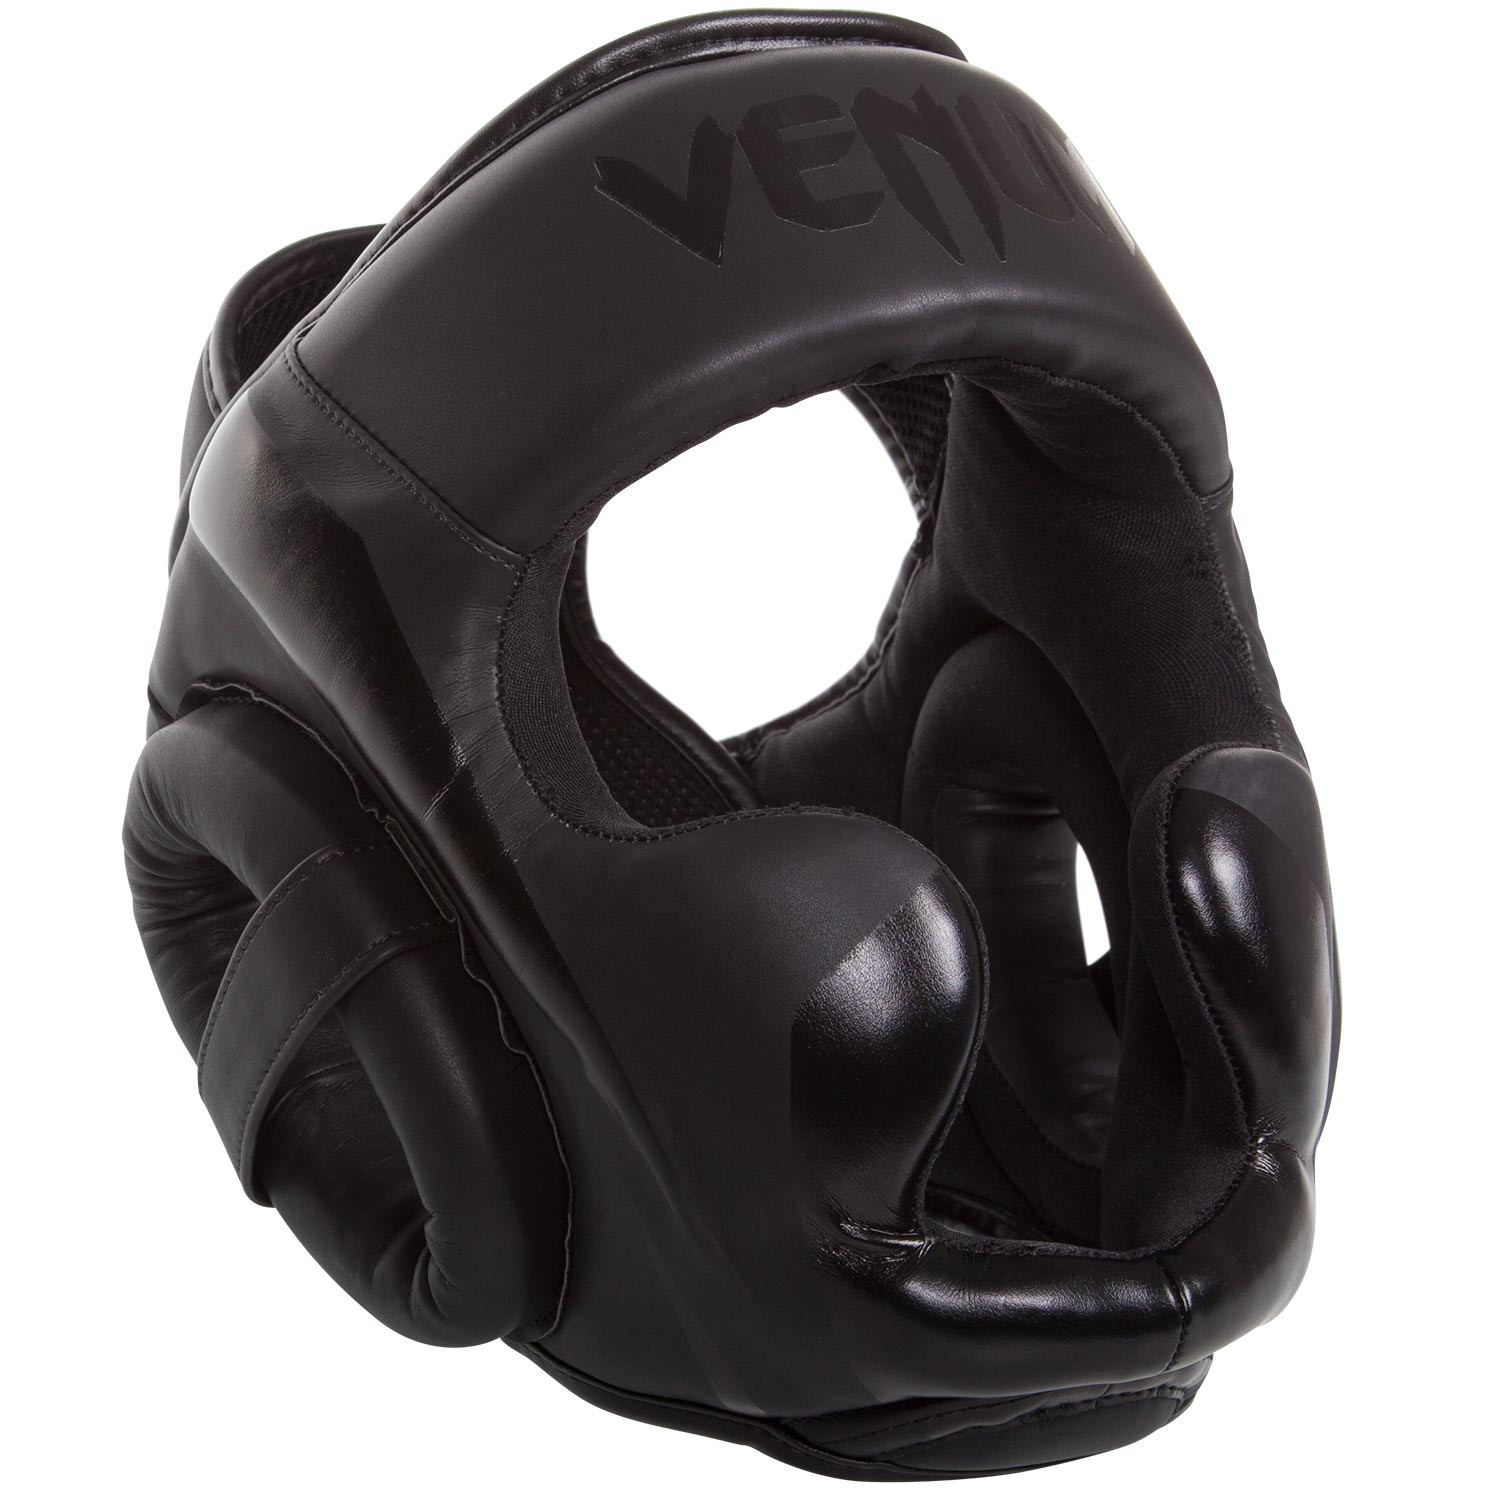 Casque Venum elite